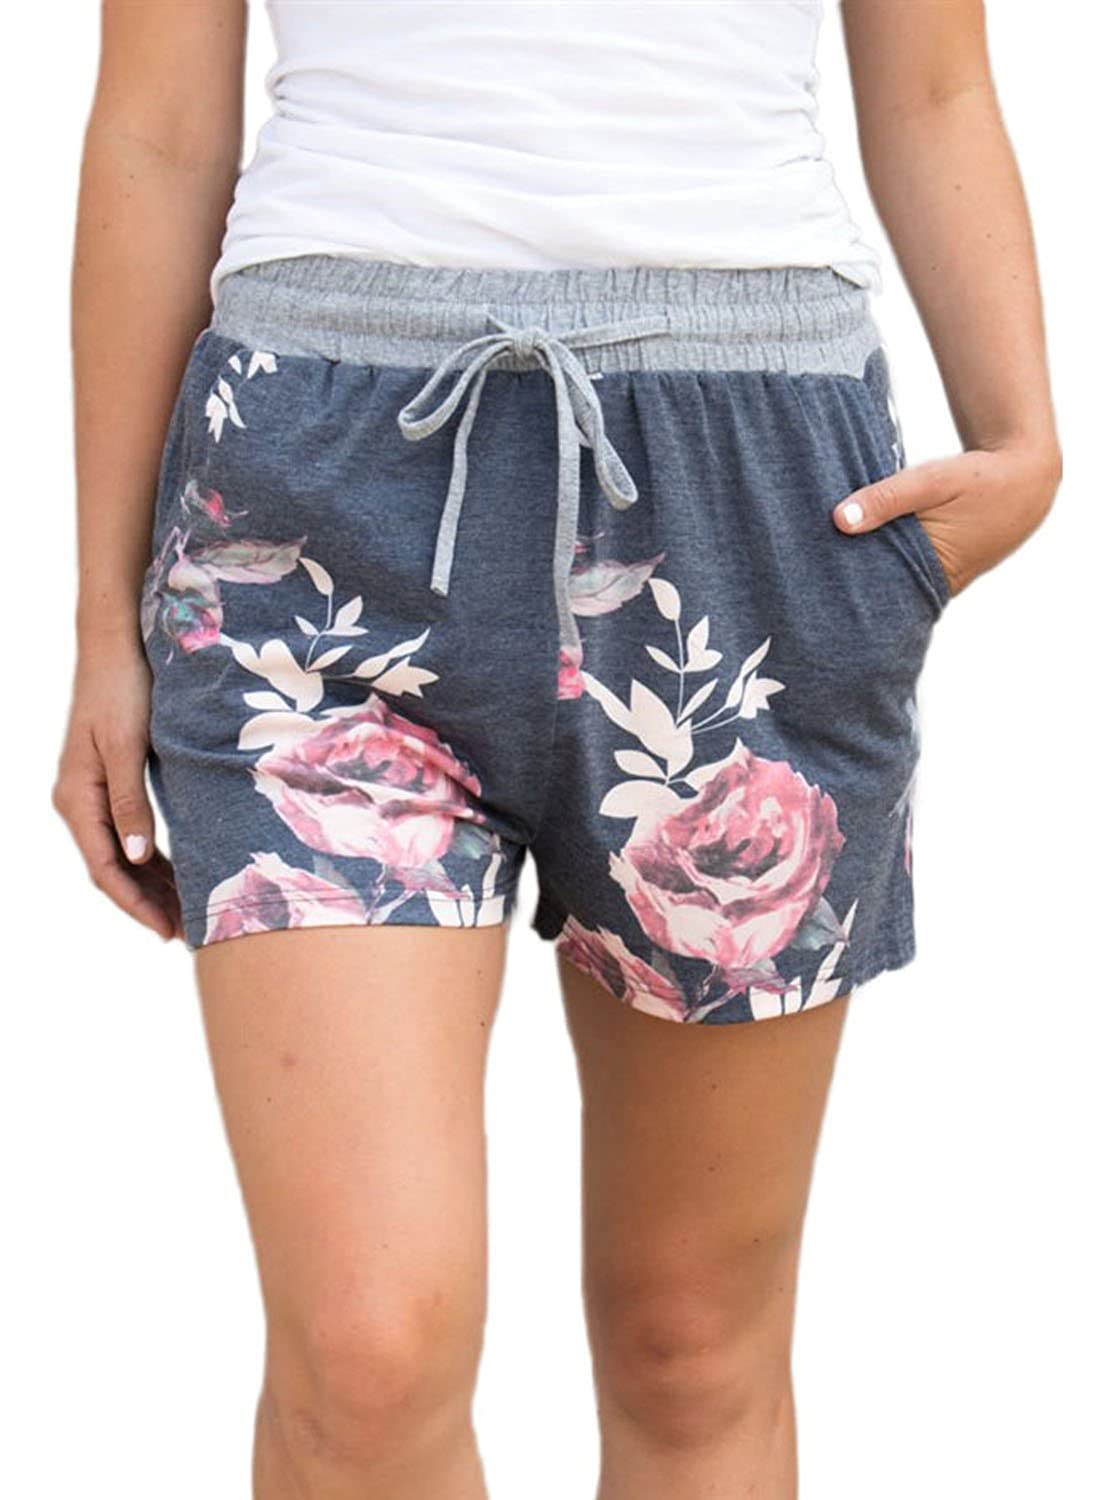 LOSRLY Women Floral Printed Summer Drawstring Waist Shorts with Pocket Plus Size